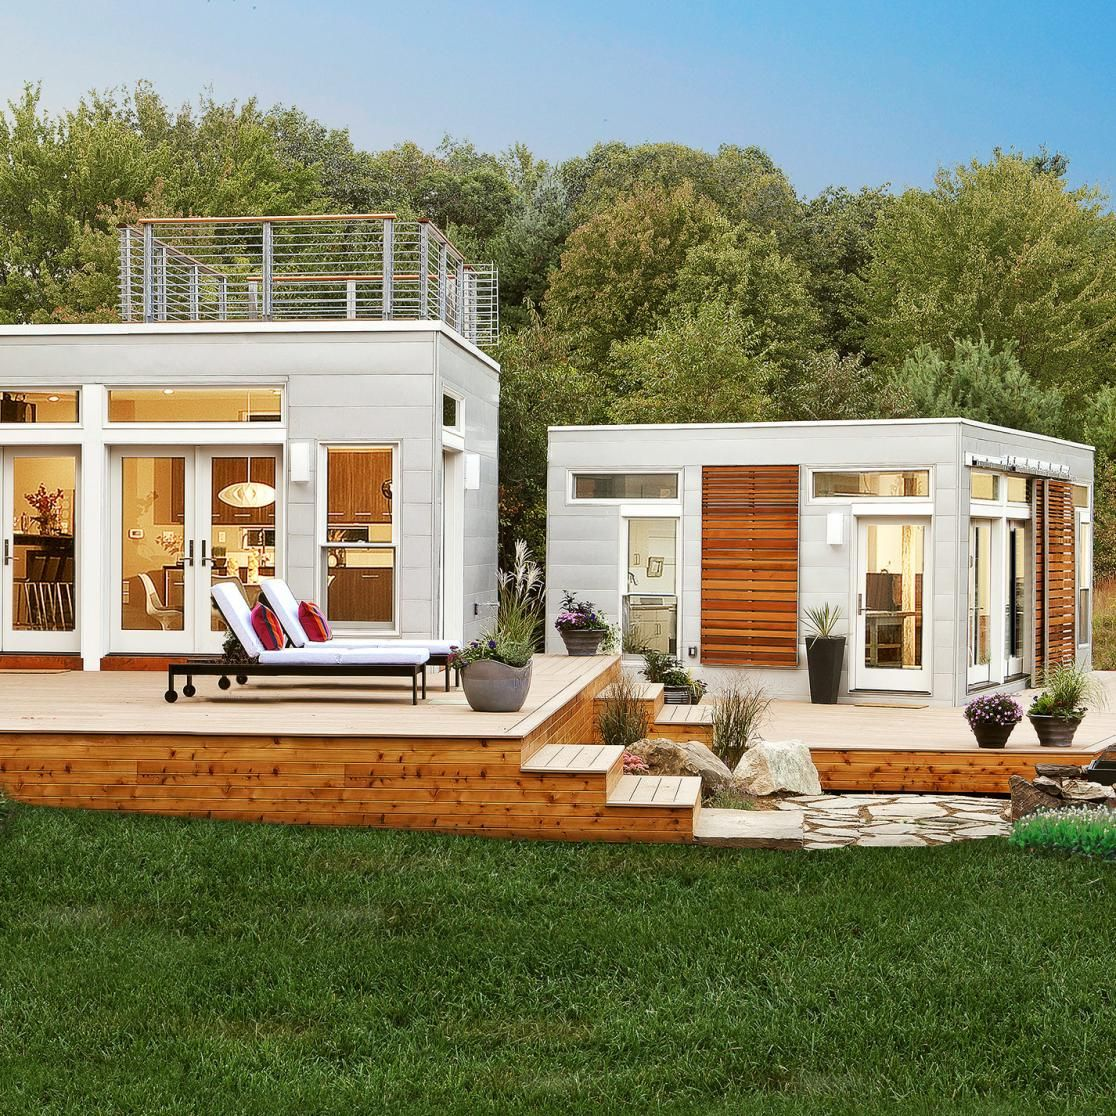 Modular Homes That Can Be Combined In Any Way Great For